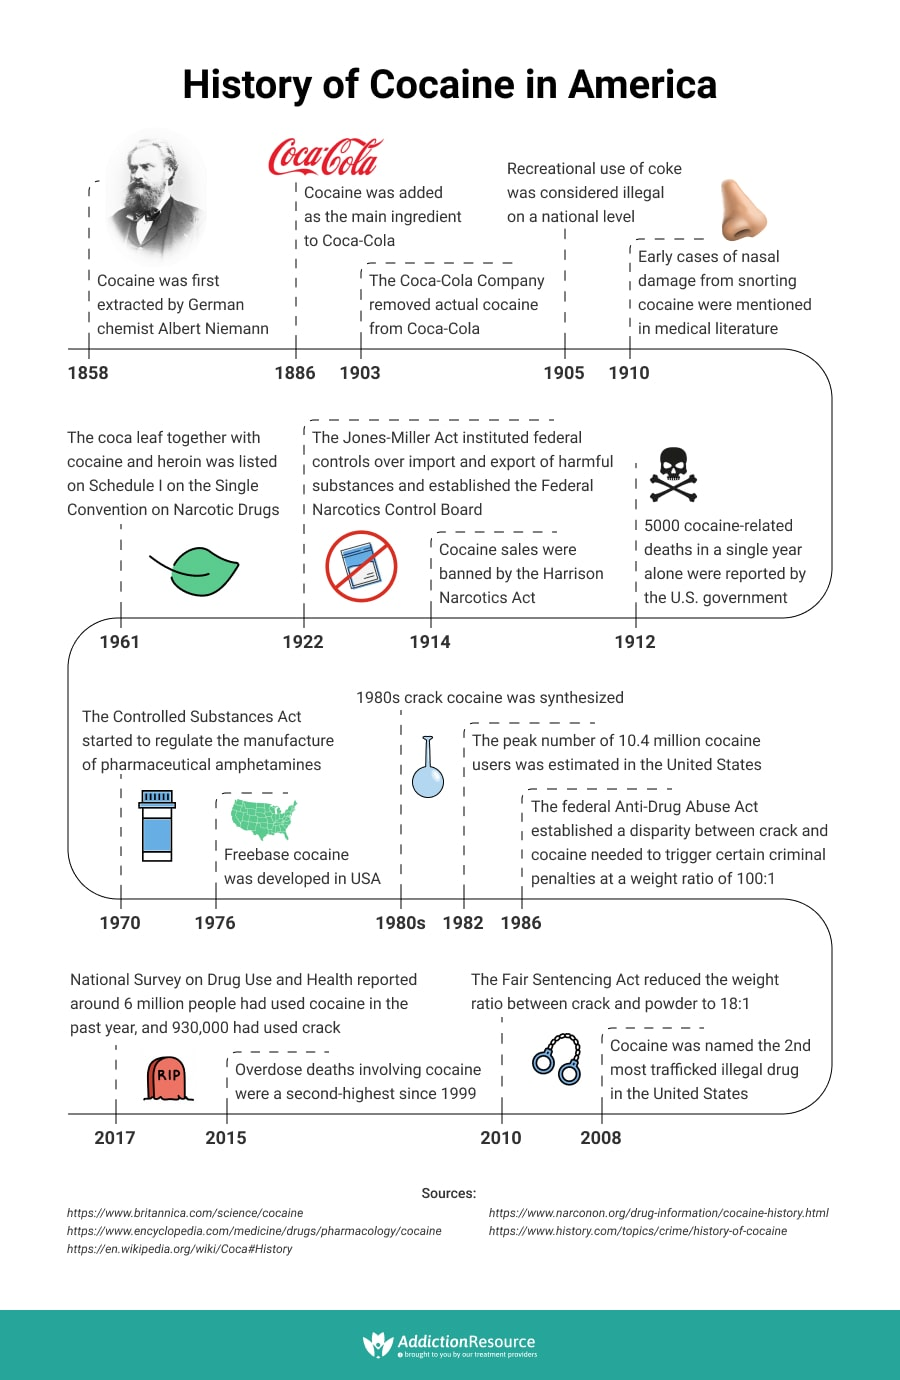 History of Cocaine in America